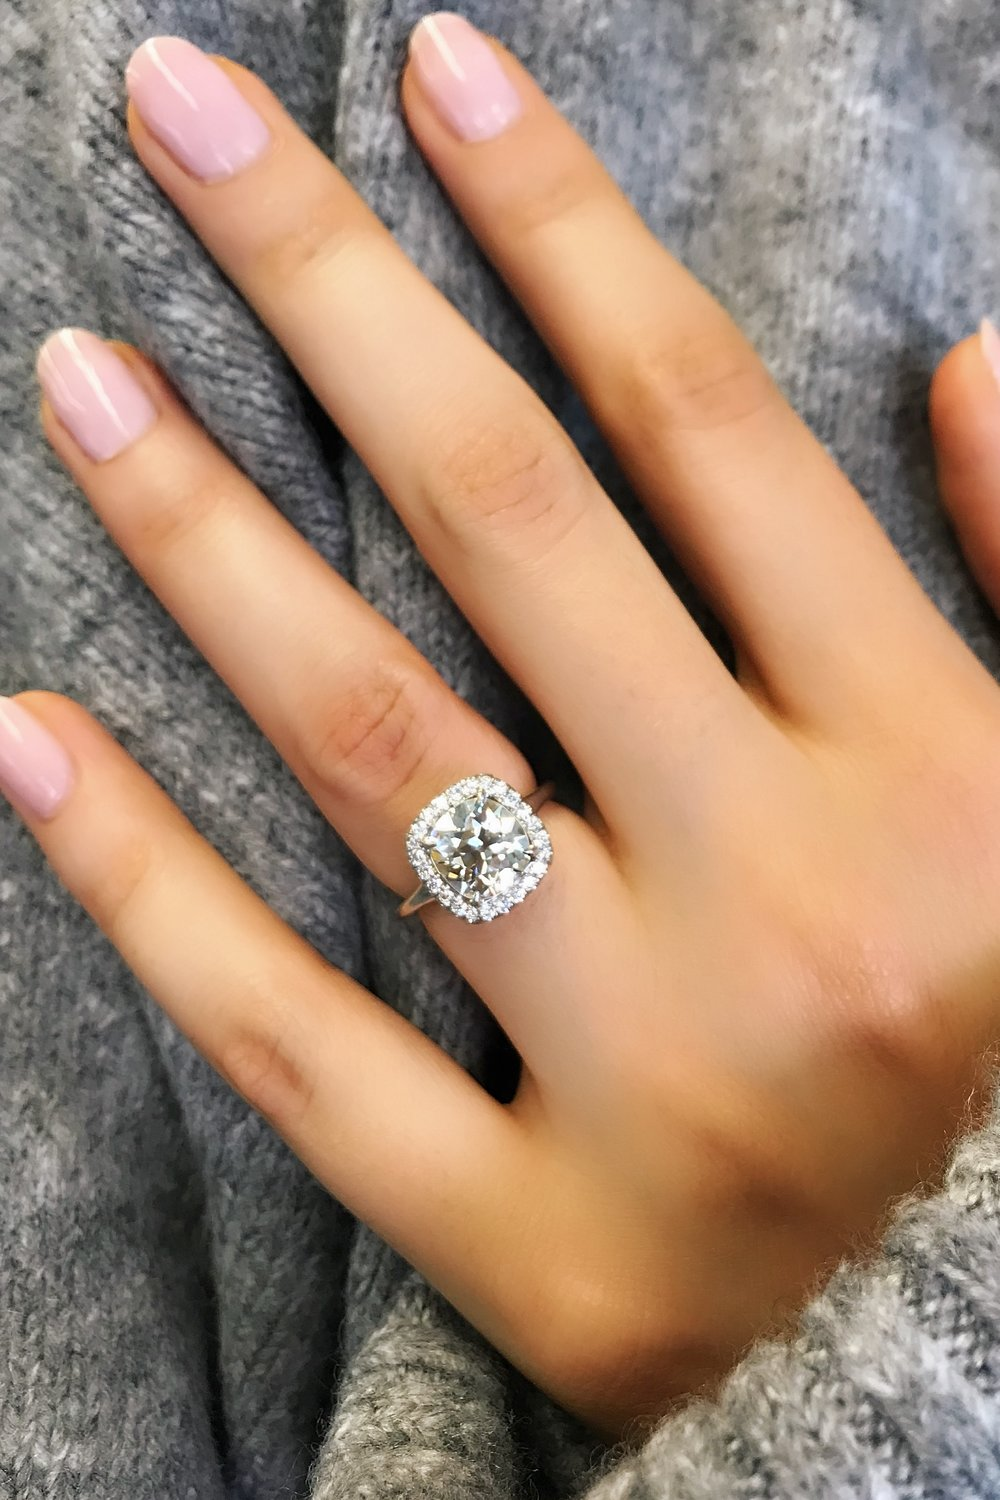 Antique Cushion Cut Diamond Engagement Ring in Platinum - This Custom Antique Cushion Cut Diamond Halo Engagement Ring is a David Alan signature. With a true passion for antique cushion cut diamonds, David travels the world sourcing diamonds like this one featured here.